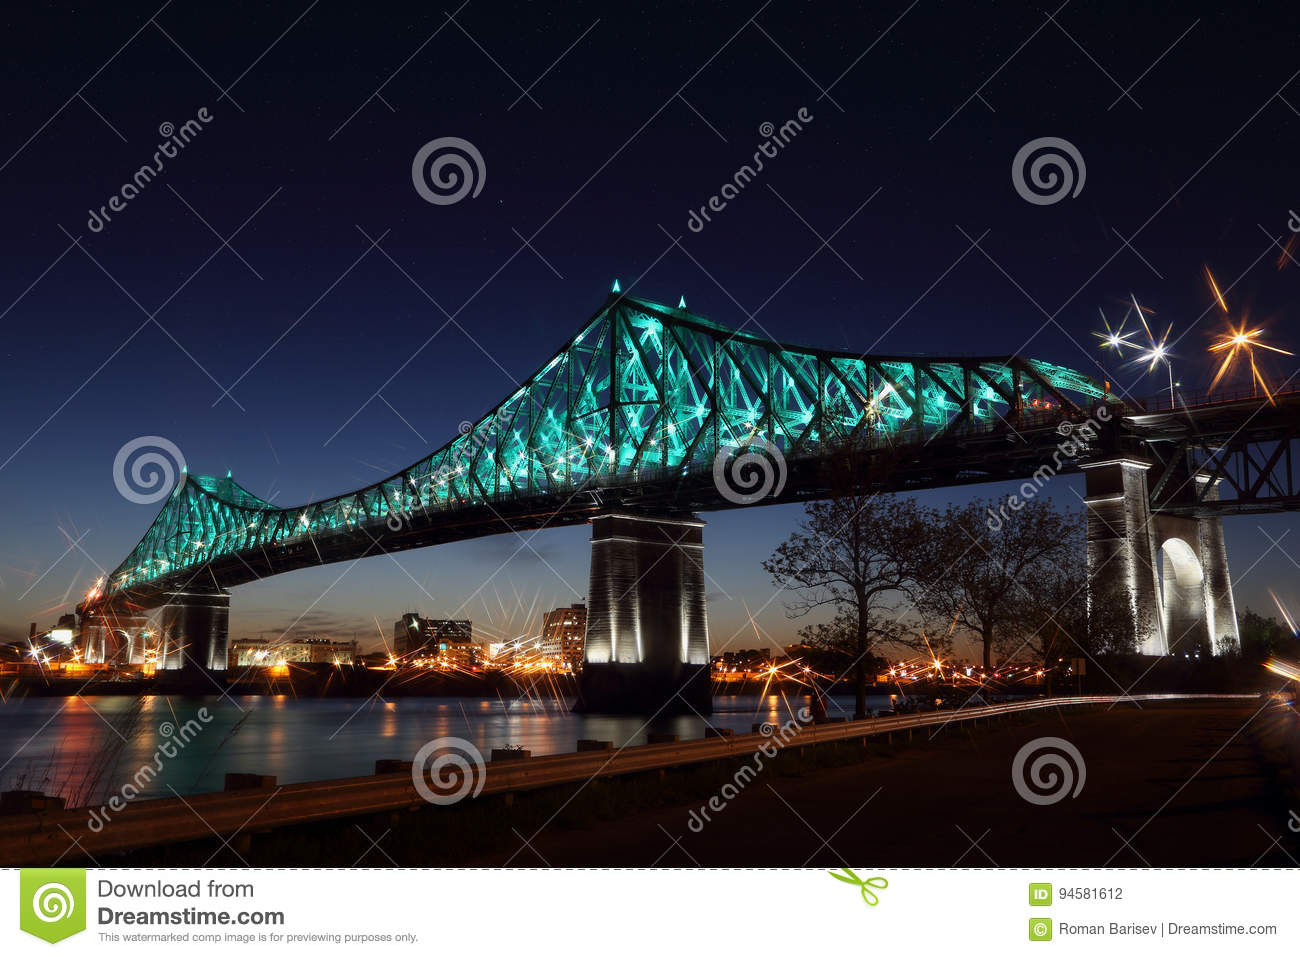 Montreal's 375th anniversary. Jacques Cartier Bridge. Bridge panoramic colorful silhouette by night